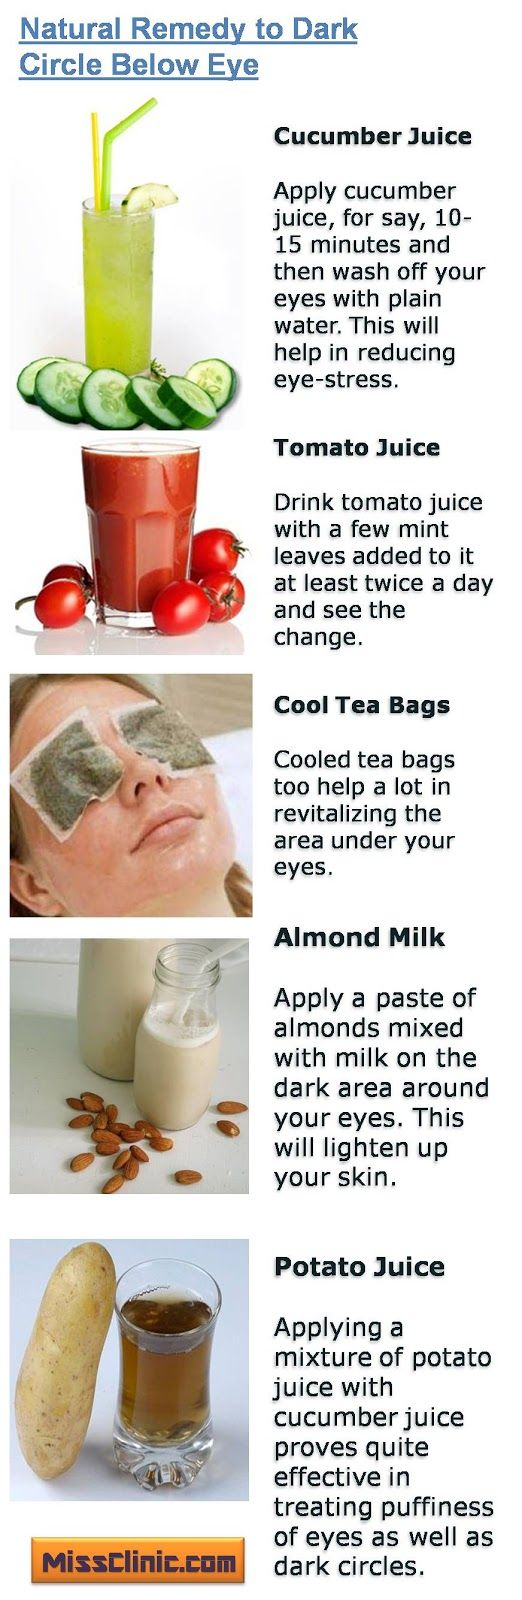 5 HOME REMEDIES TO DARK CIRCLE UNDER EYES worth a try :)